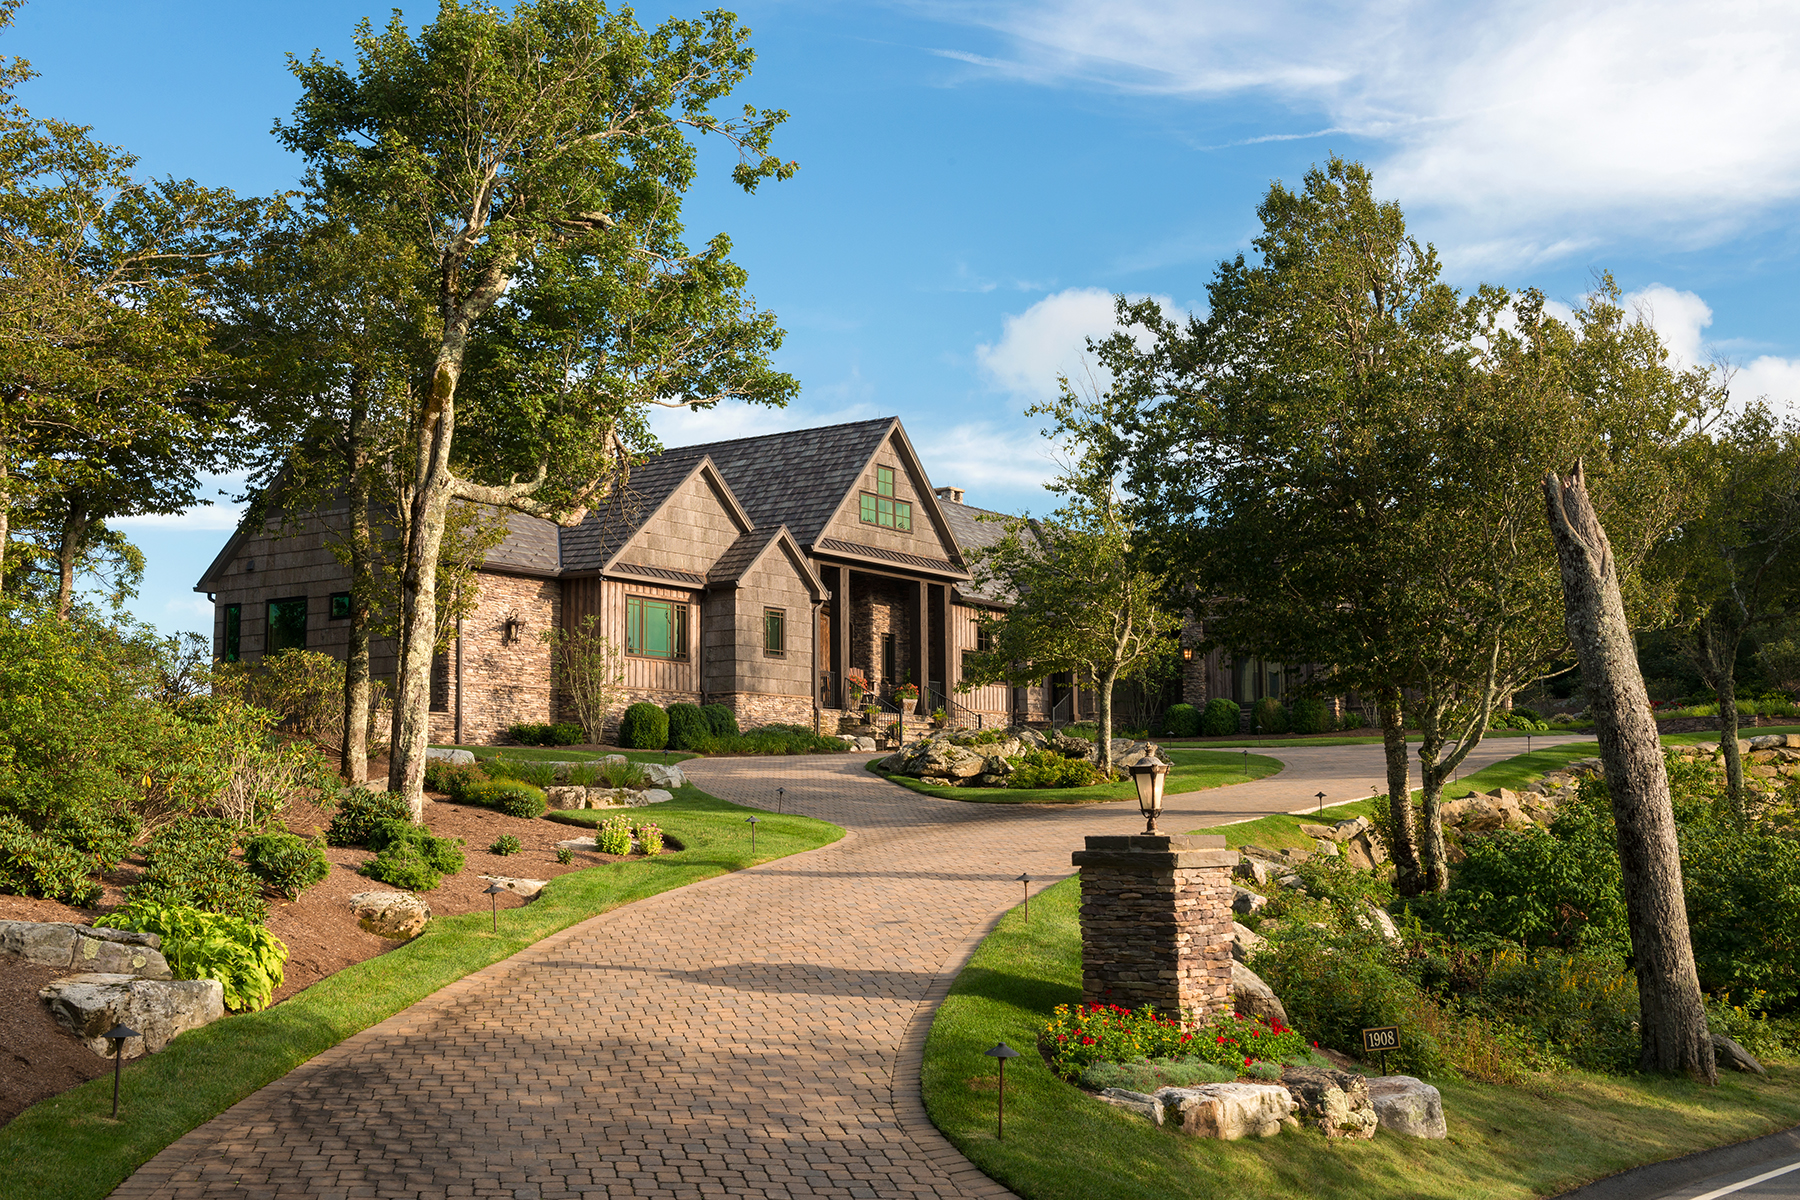 Single Family Homes for Active at LINVILLE - LINVILLE RIDGE 1908 Flattop Cliffs Dr Linville, North Carolina 28646 United States